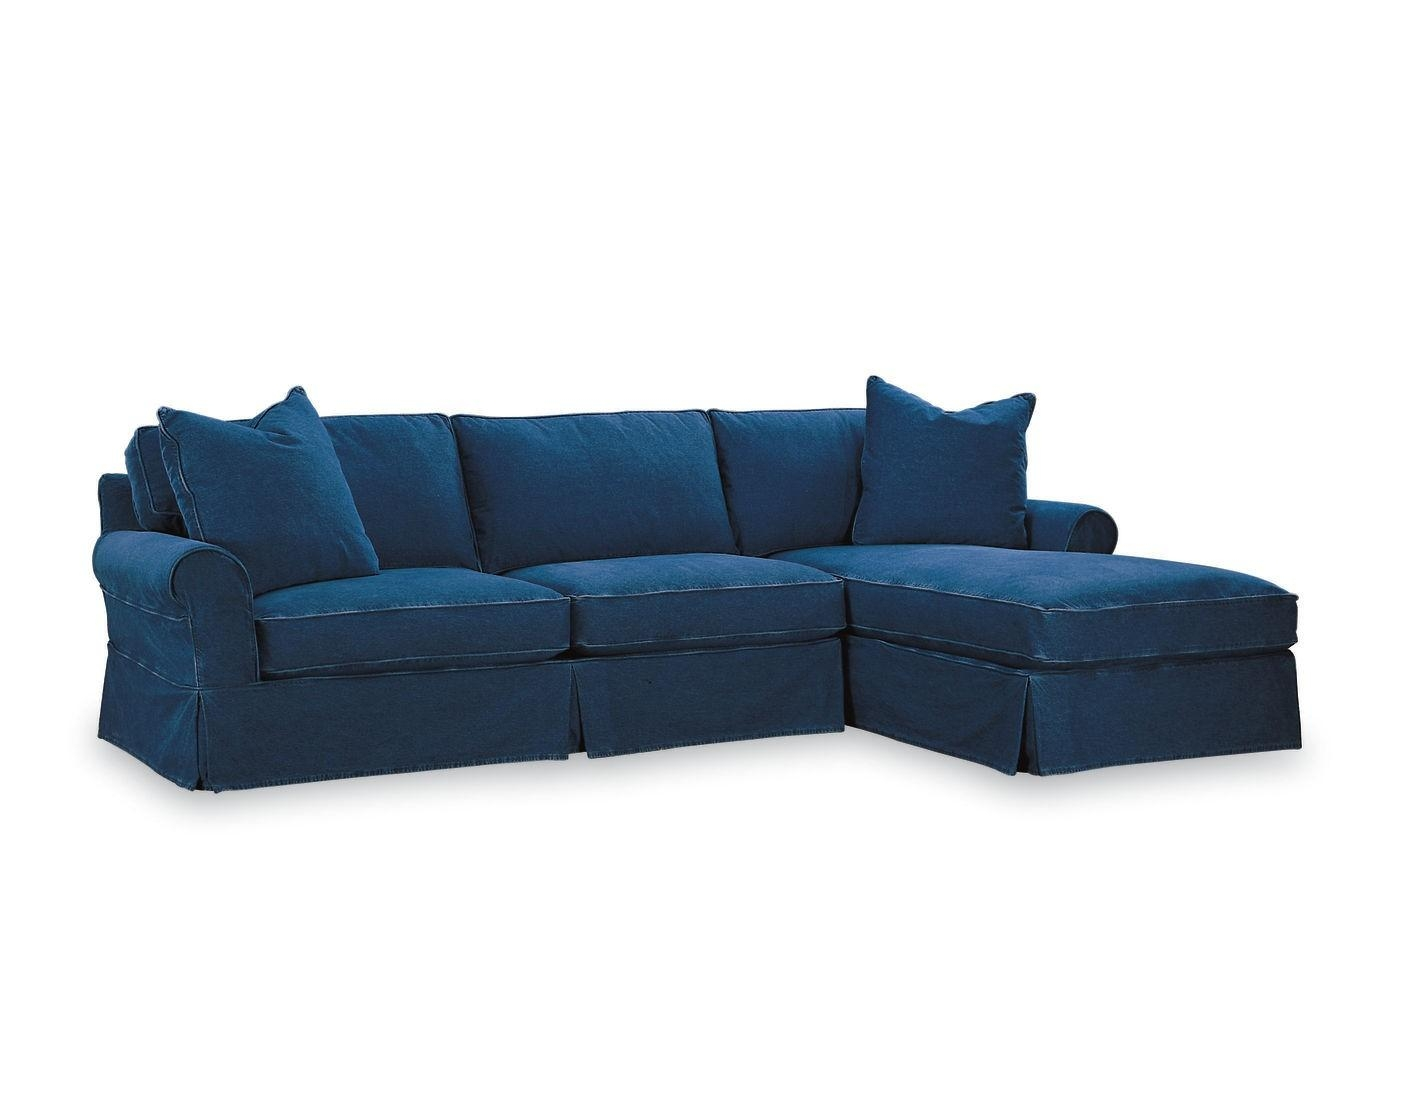 American Furniture | Nantucket Chaise Sectional | Lee Industries Throughout Lee Industries Sectional Sofa (Image 5 of 20)